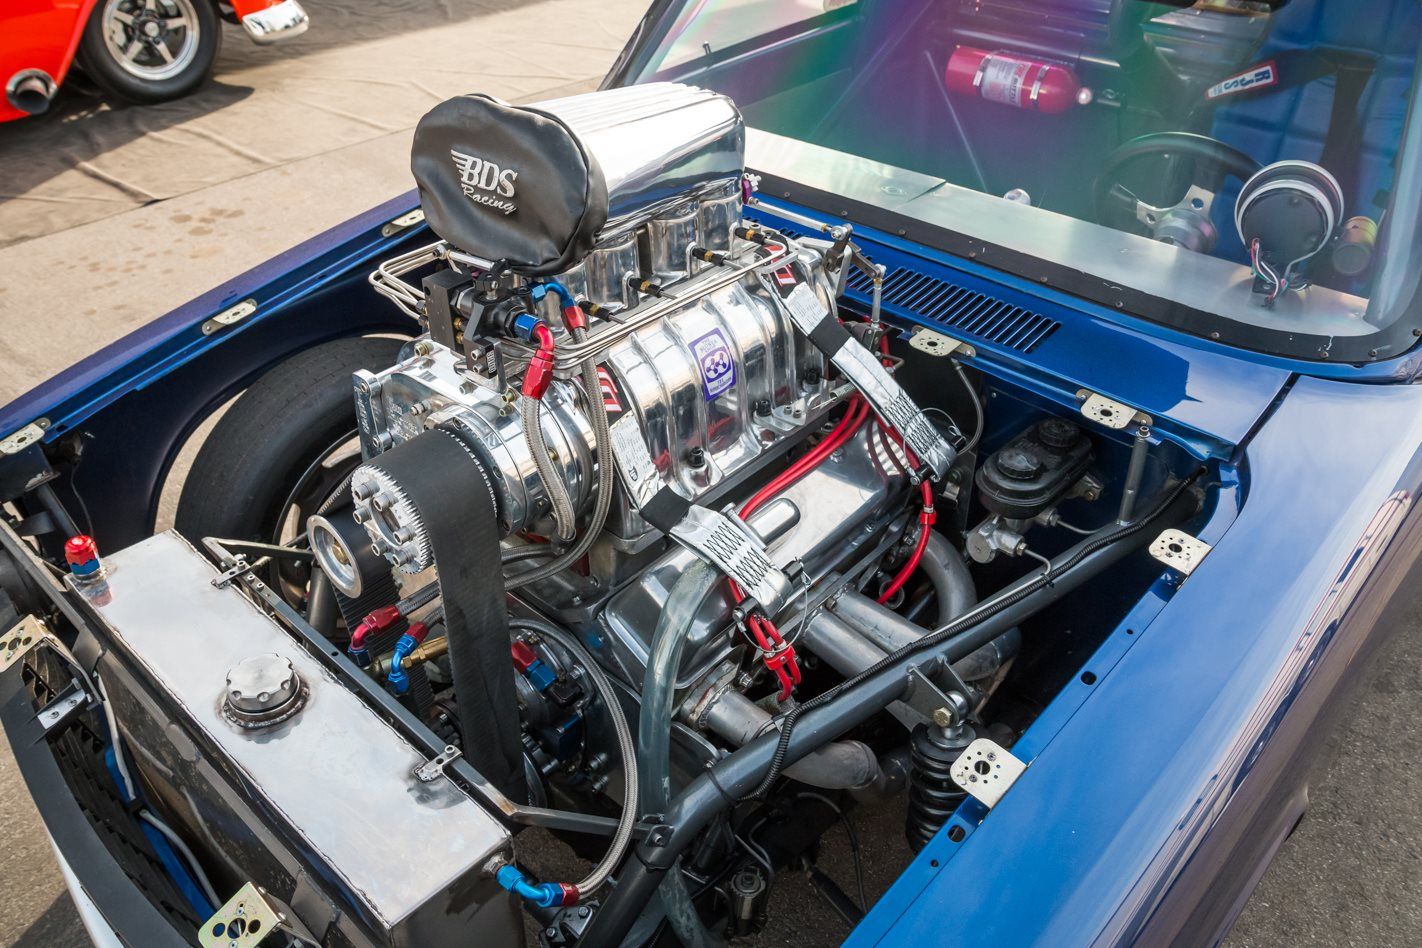 Scott Bisel's Chevy engine